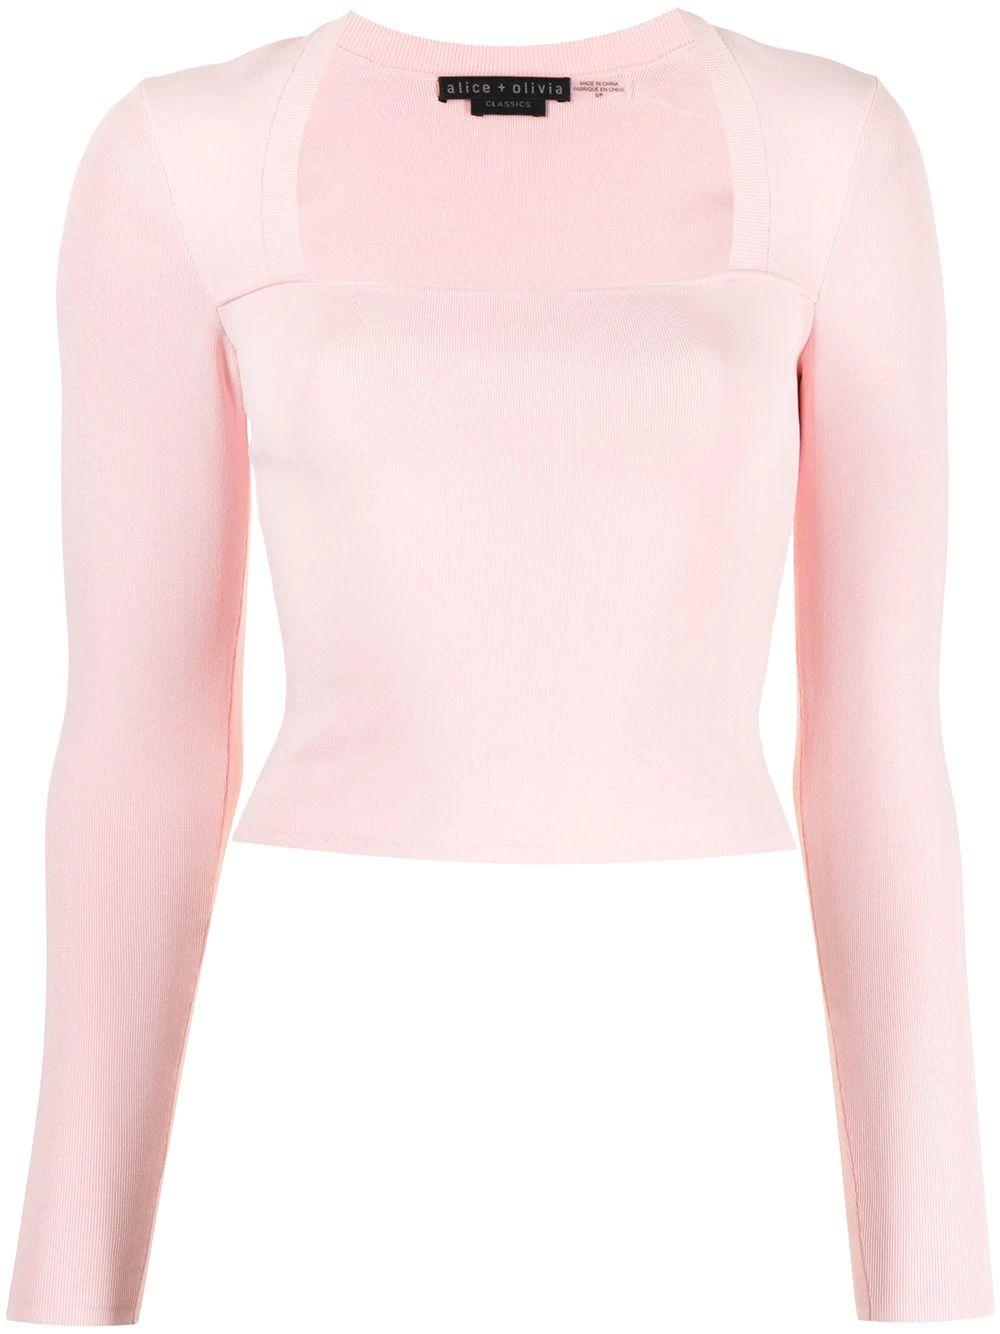 Ricarda Cut Out Top Item # CL000513701